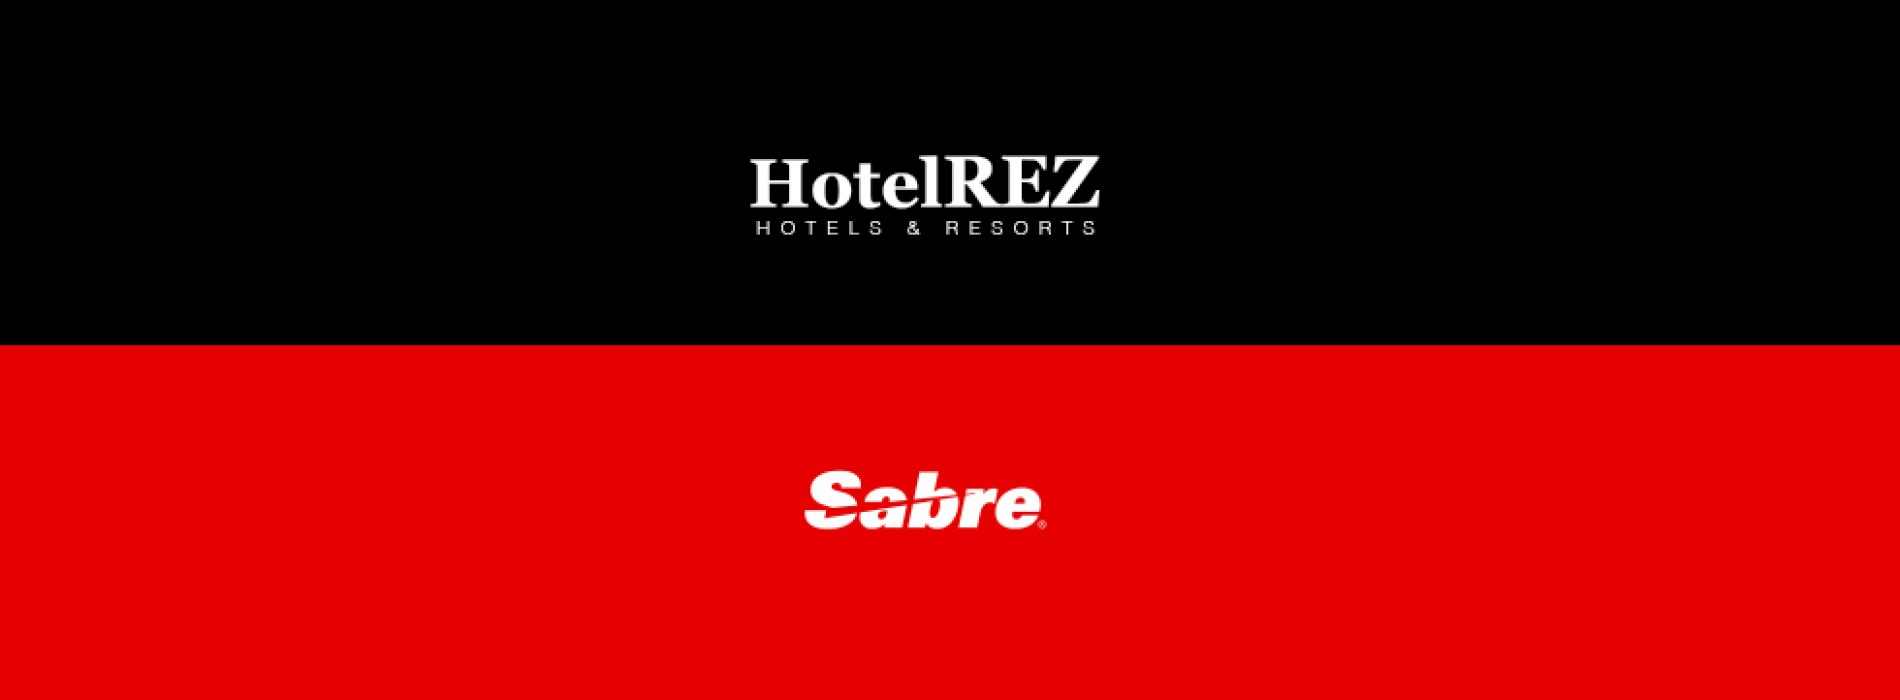 HotelREZ Hotels & Resorts adopts Sabre's hospitality solutions to provide customers with industry-leading reservation technology